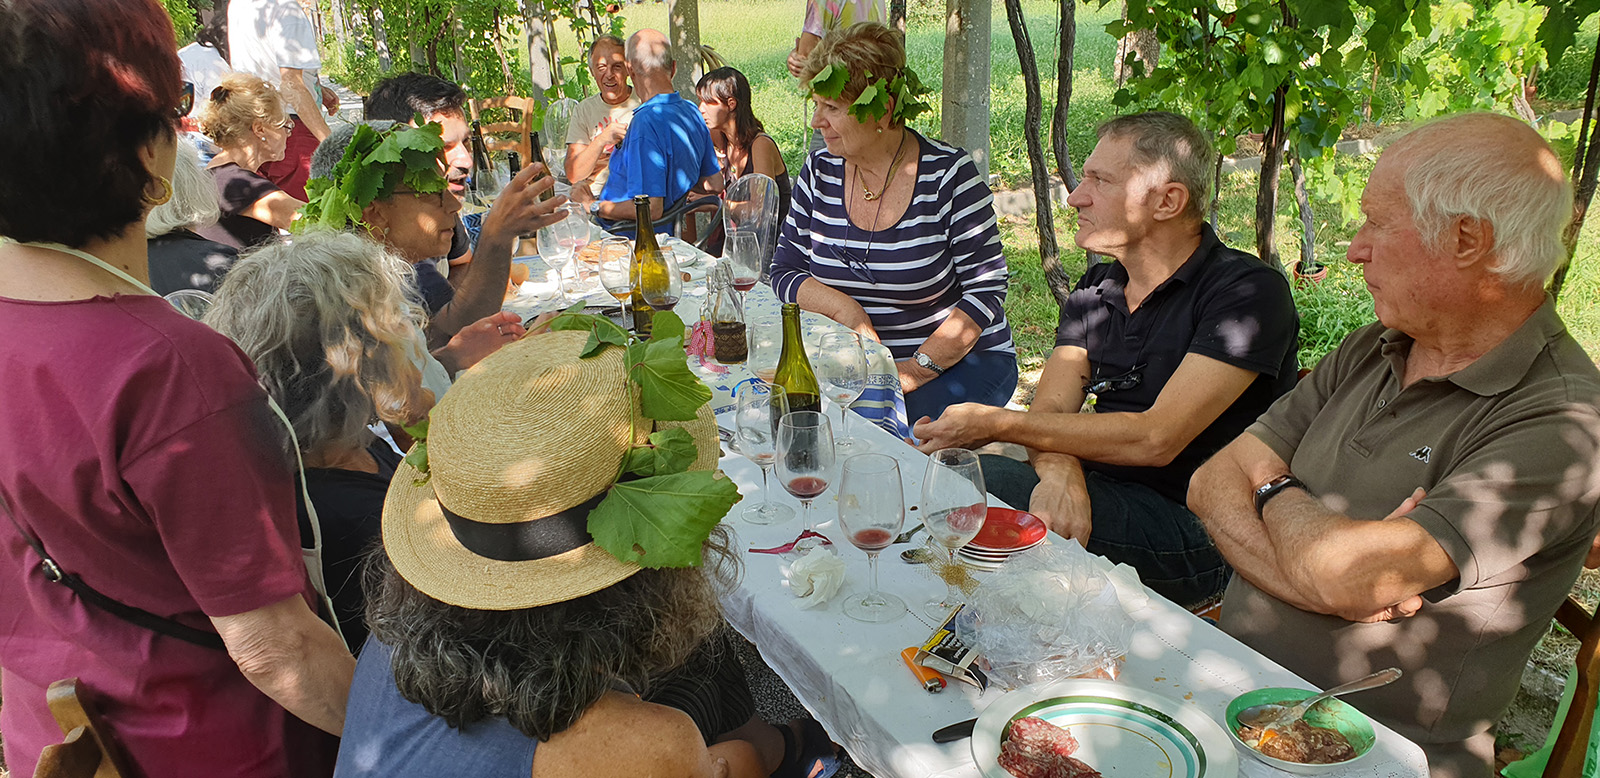 Walking and tasting tours in Emilia-Romagna - lunch in a vineyard